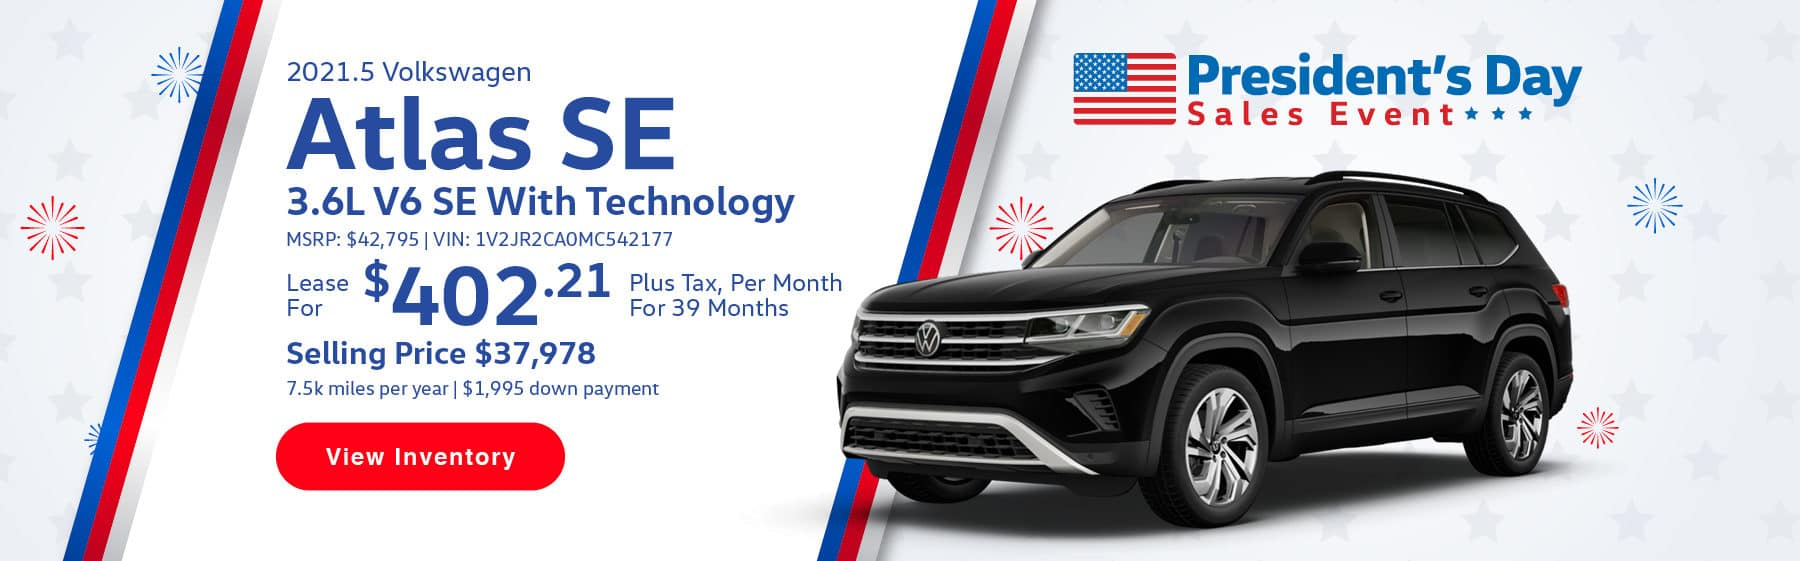 Lease the 2021.5 Atlas 3.6L V6 SE w/Technology for $402.21 per month, plus tax for 39 months. Selling price is $37,978. 7,500 miles per year. $1,995 down payment. $42,795 MSRP. Vin #: 1V2JR2CA0MC542177.